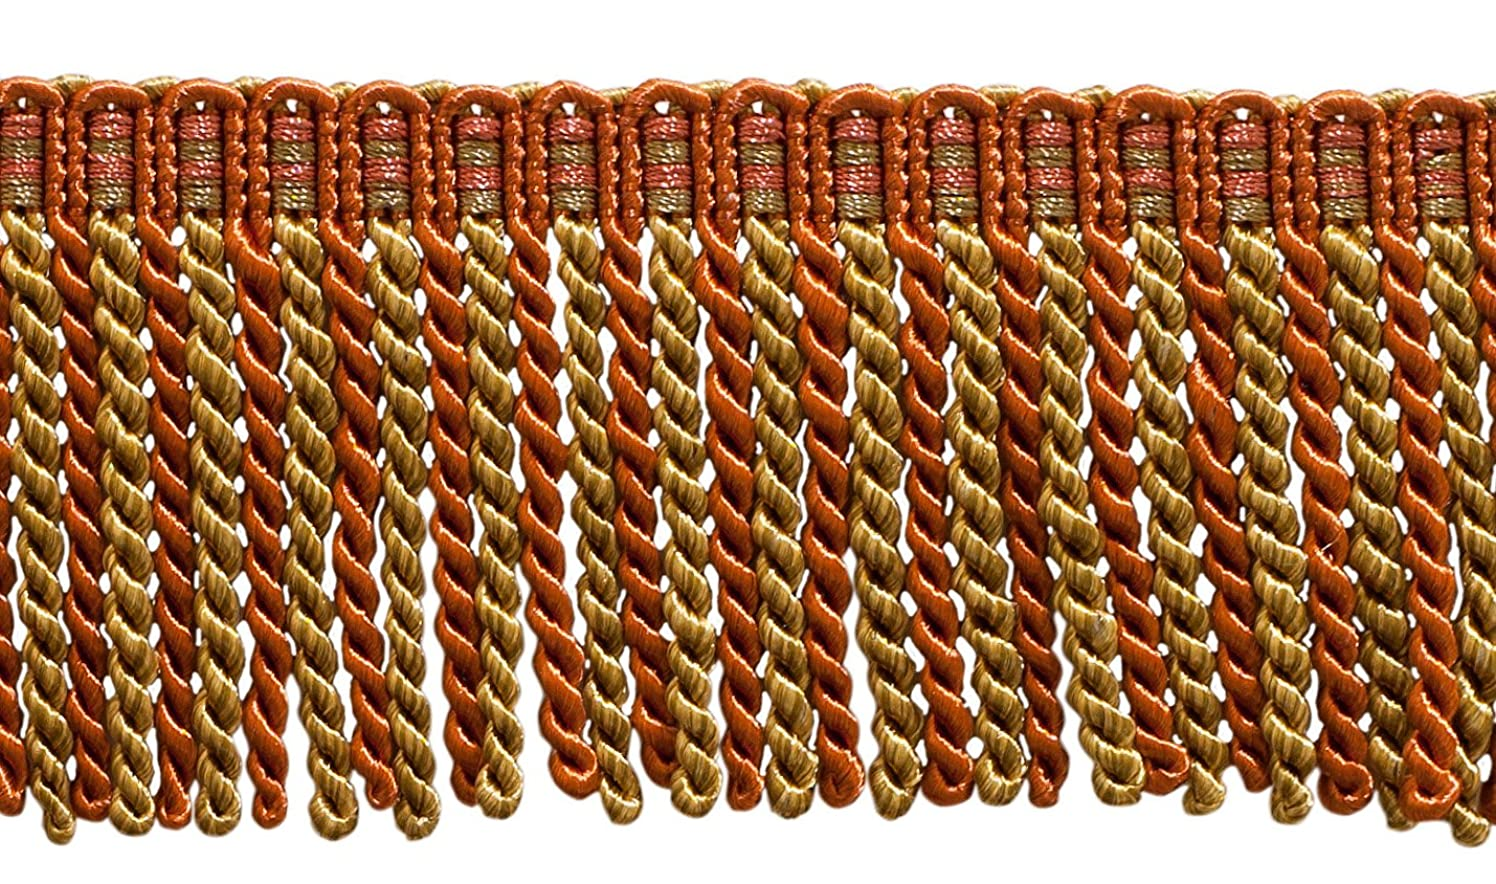 16 Feet Value Pack of 3 Inch Long Bullion Fringe Trim, Style# DB3 - Copper, Olive Green - Rust 07 (5.4 Yards / 5 Meters)